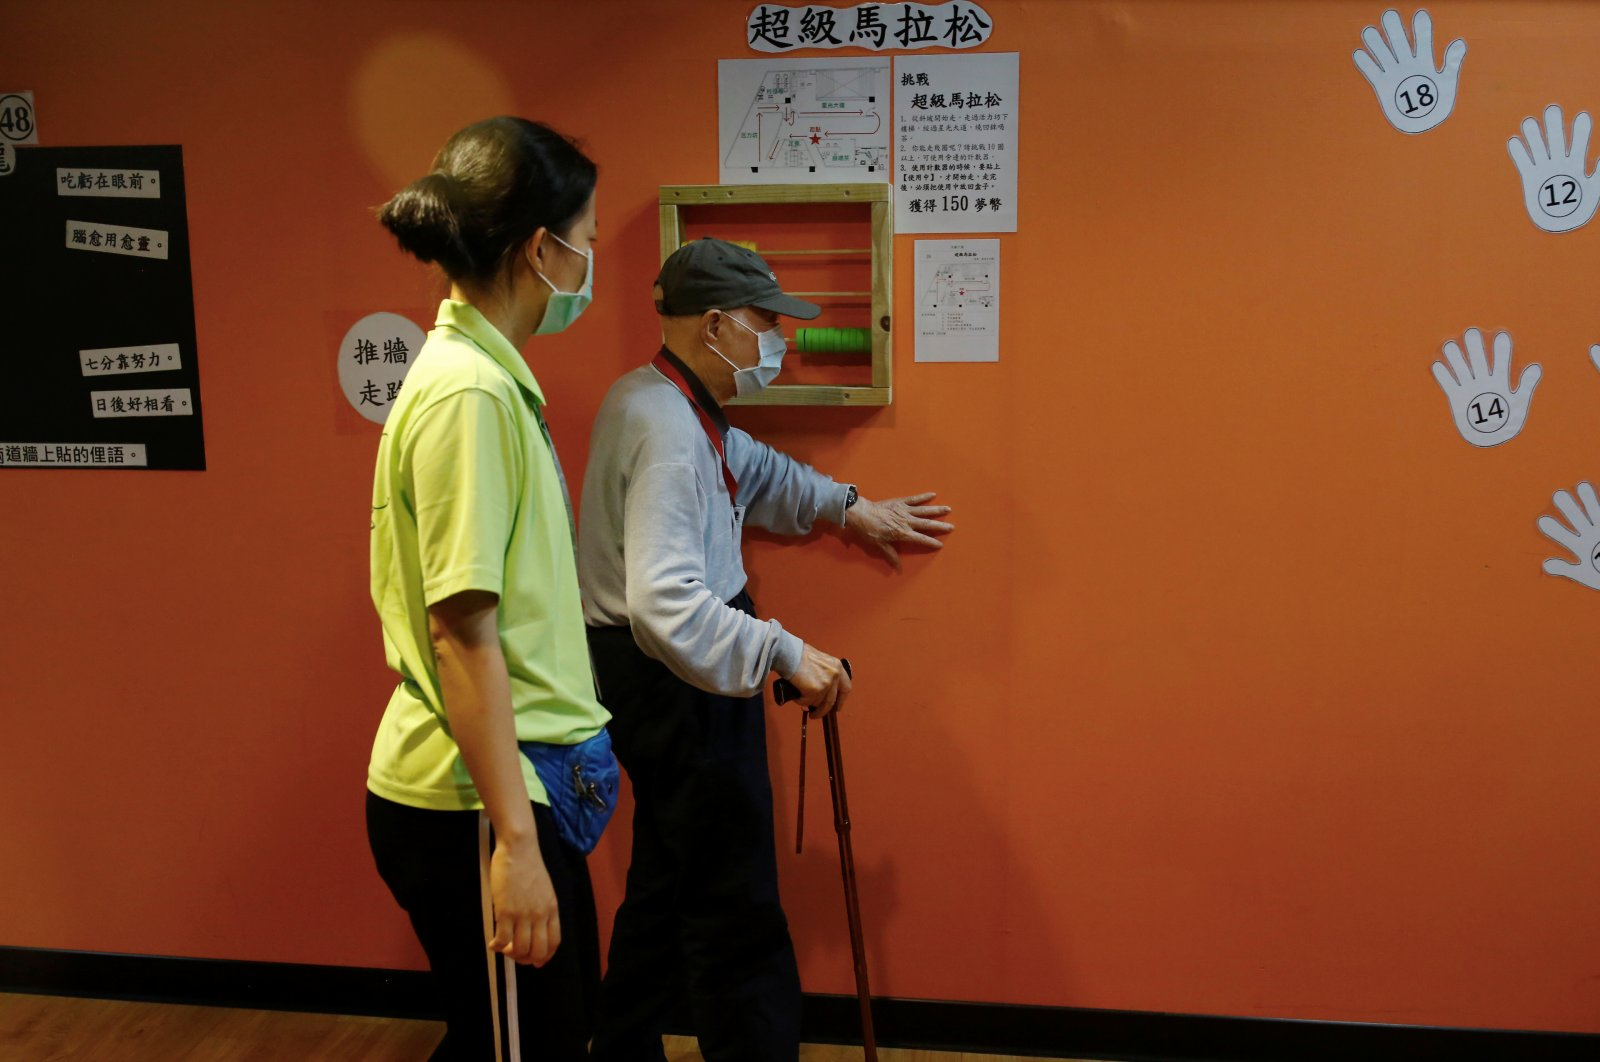 A senior wears a mask to protect himself from coronavirus disease (COVID-19) while walking along a wall at an elderly day care center in Taipei, Taiwan May 8, 2020. Picture taken May 8, 2020. (Reuters Photo)